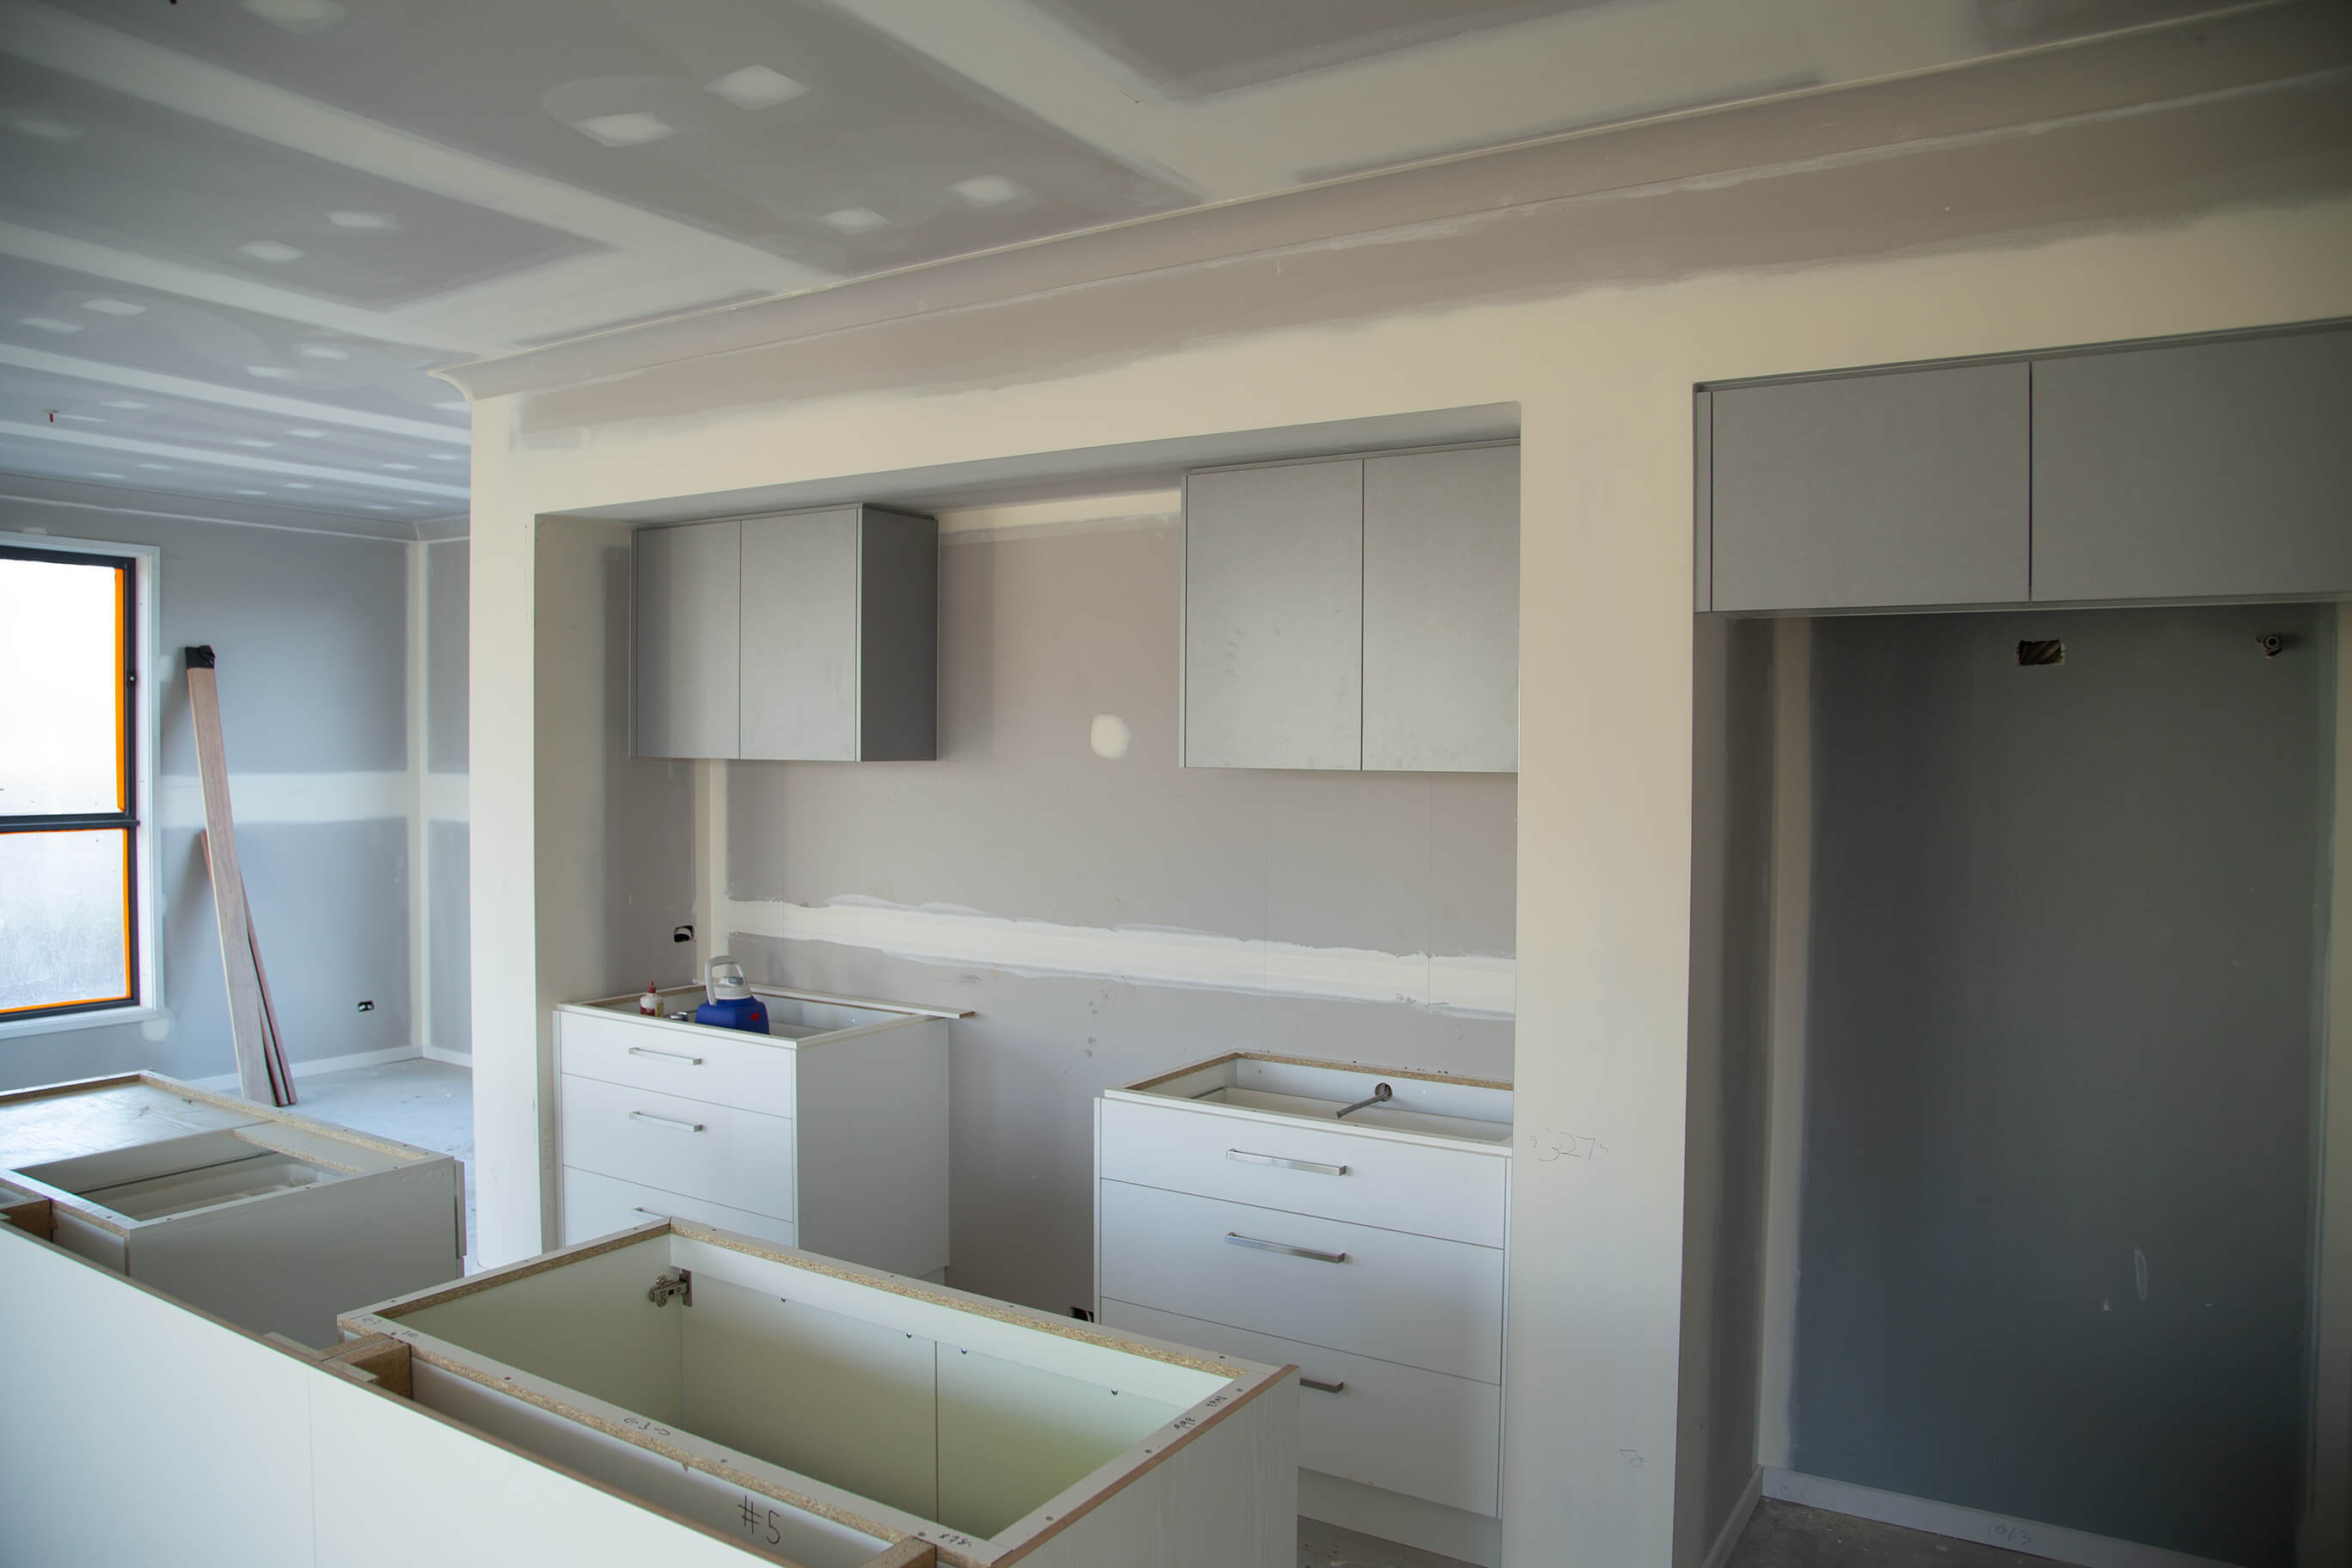 Kitchen fit-out in a double storey house construction in Karawatha, Brisbane